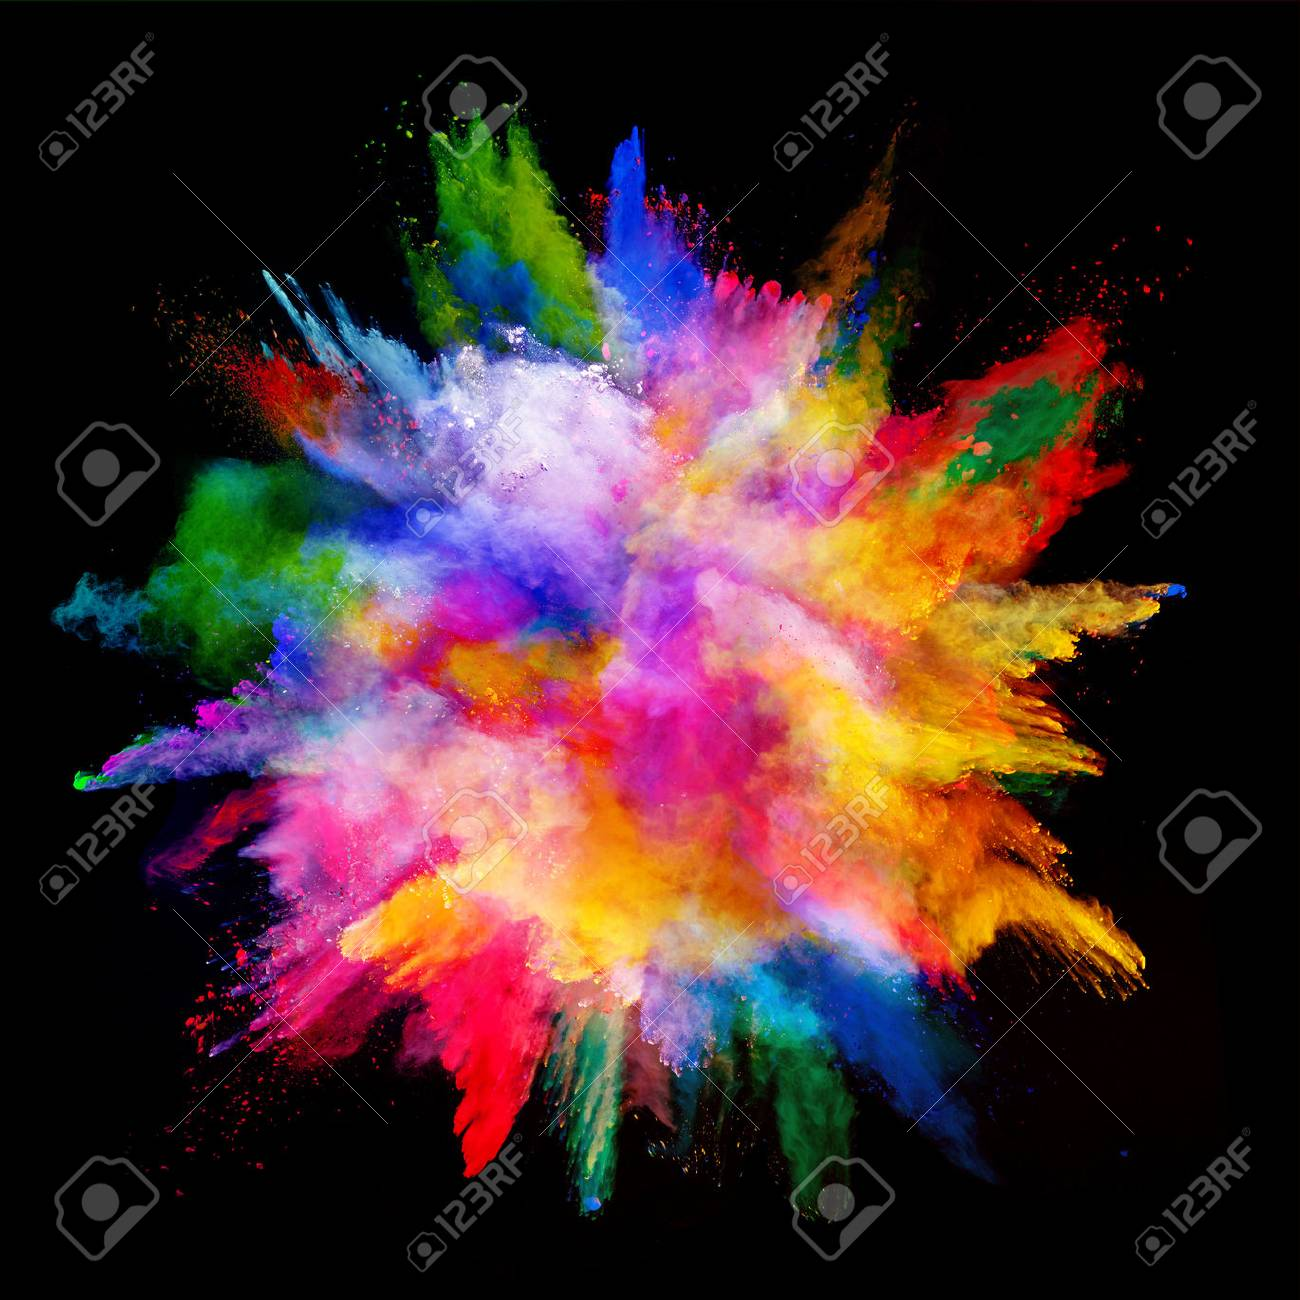 Explosion of colored powder, isolated on black background. Power and art concept, abstract blust of colors. - 76794578